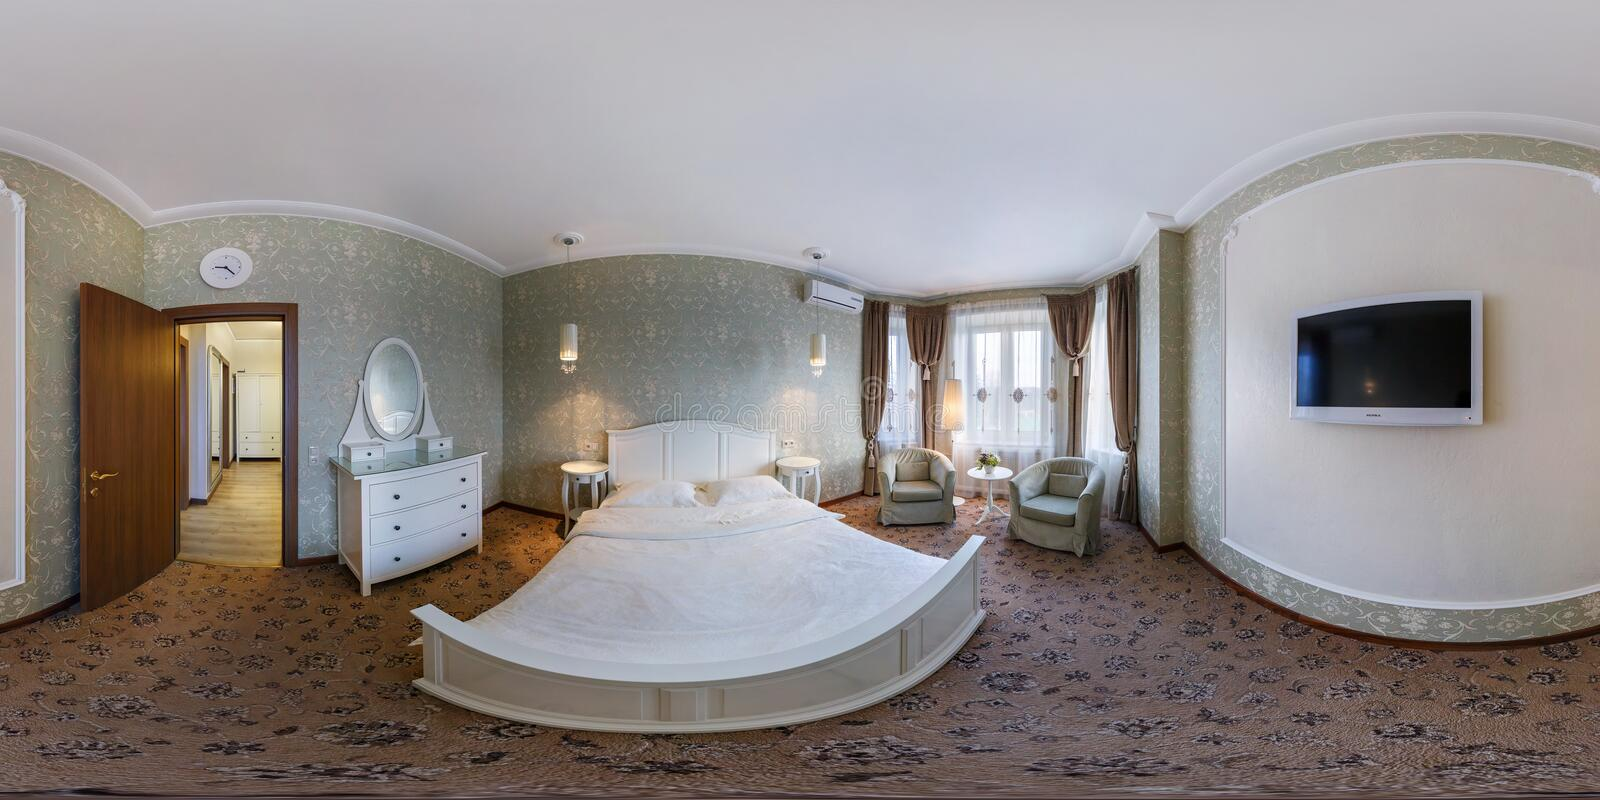 MINSK, BELARUS - FEBRUARY 27, 2014: Full spherical 360 by 180 degrees seamless panorama in equirectangular equidistant projection. Panorama in interior bedroom stock photo